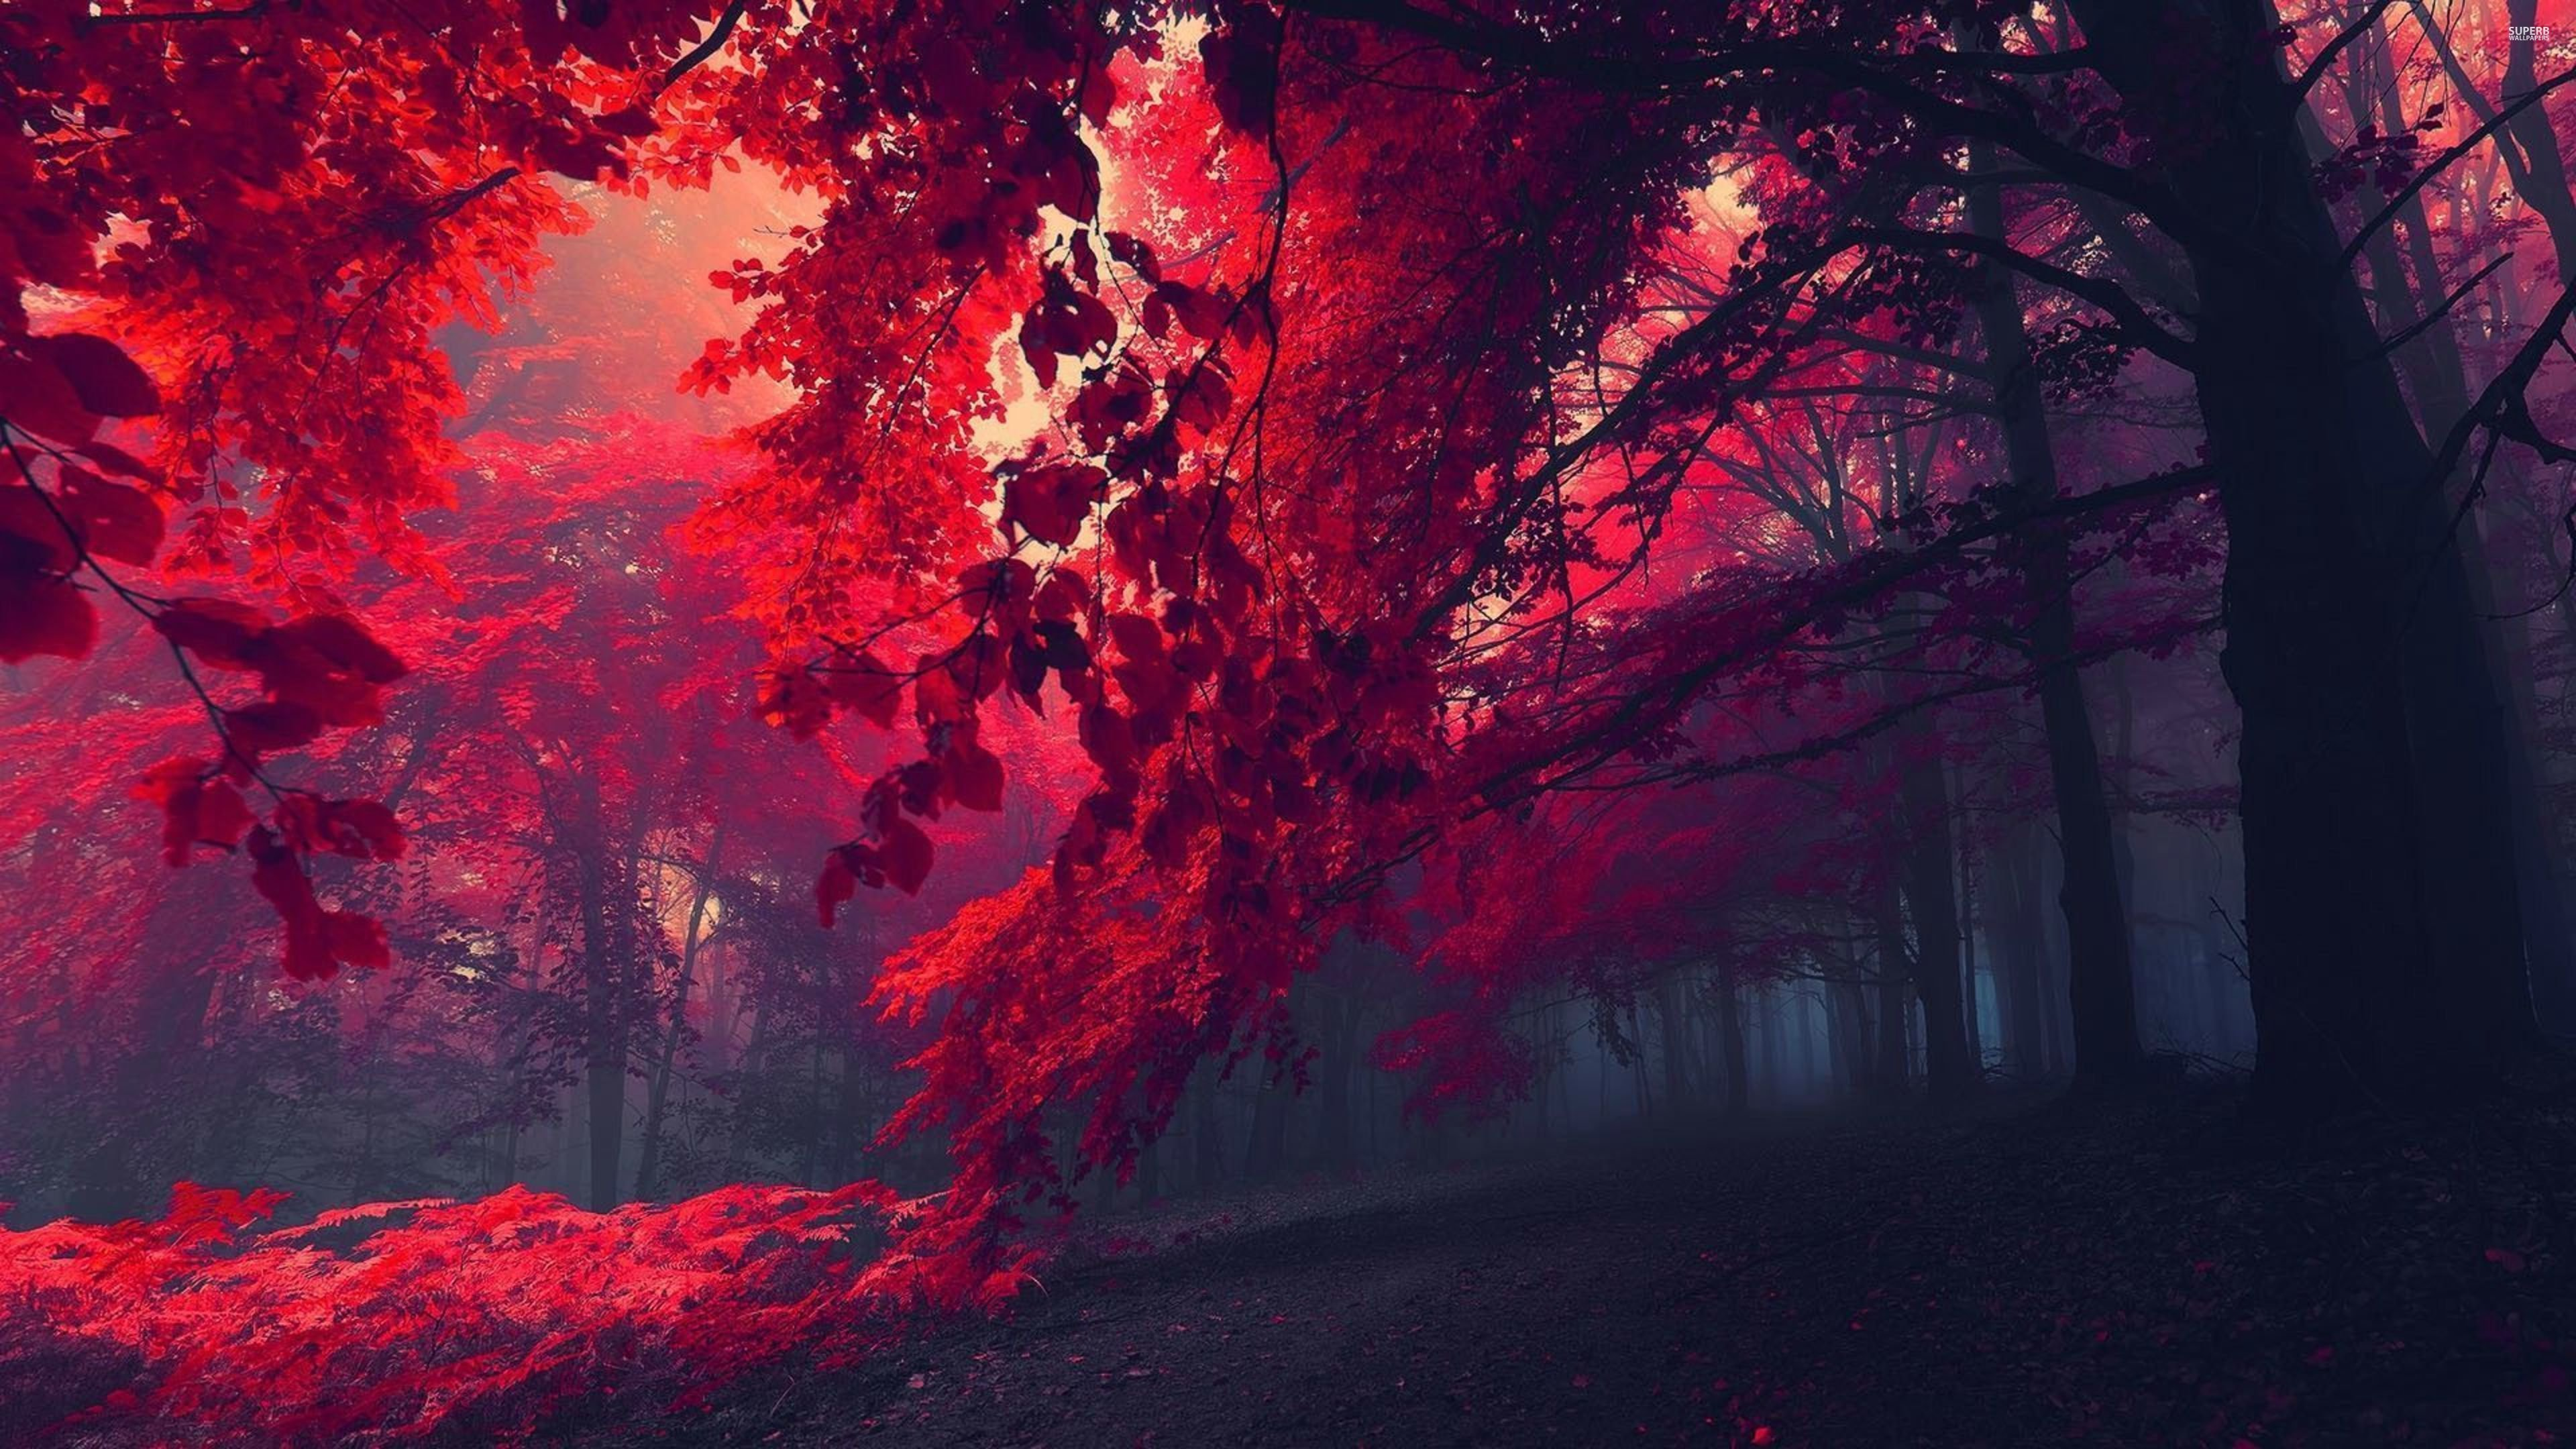 red forest 26750 3840x2160 wallpaper 3840x2160 317502